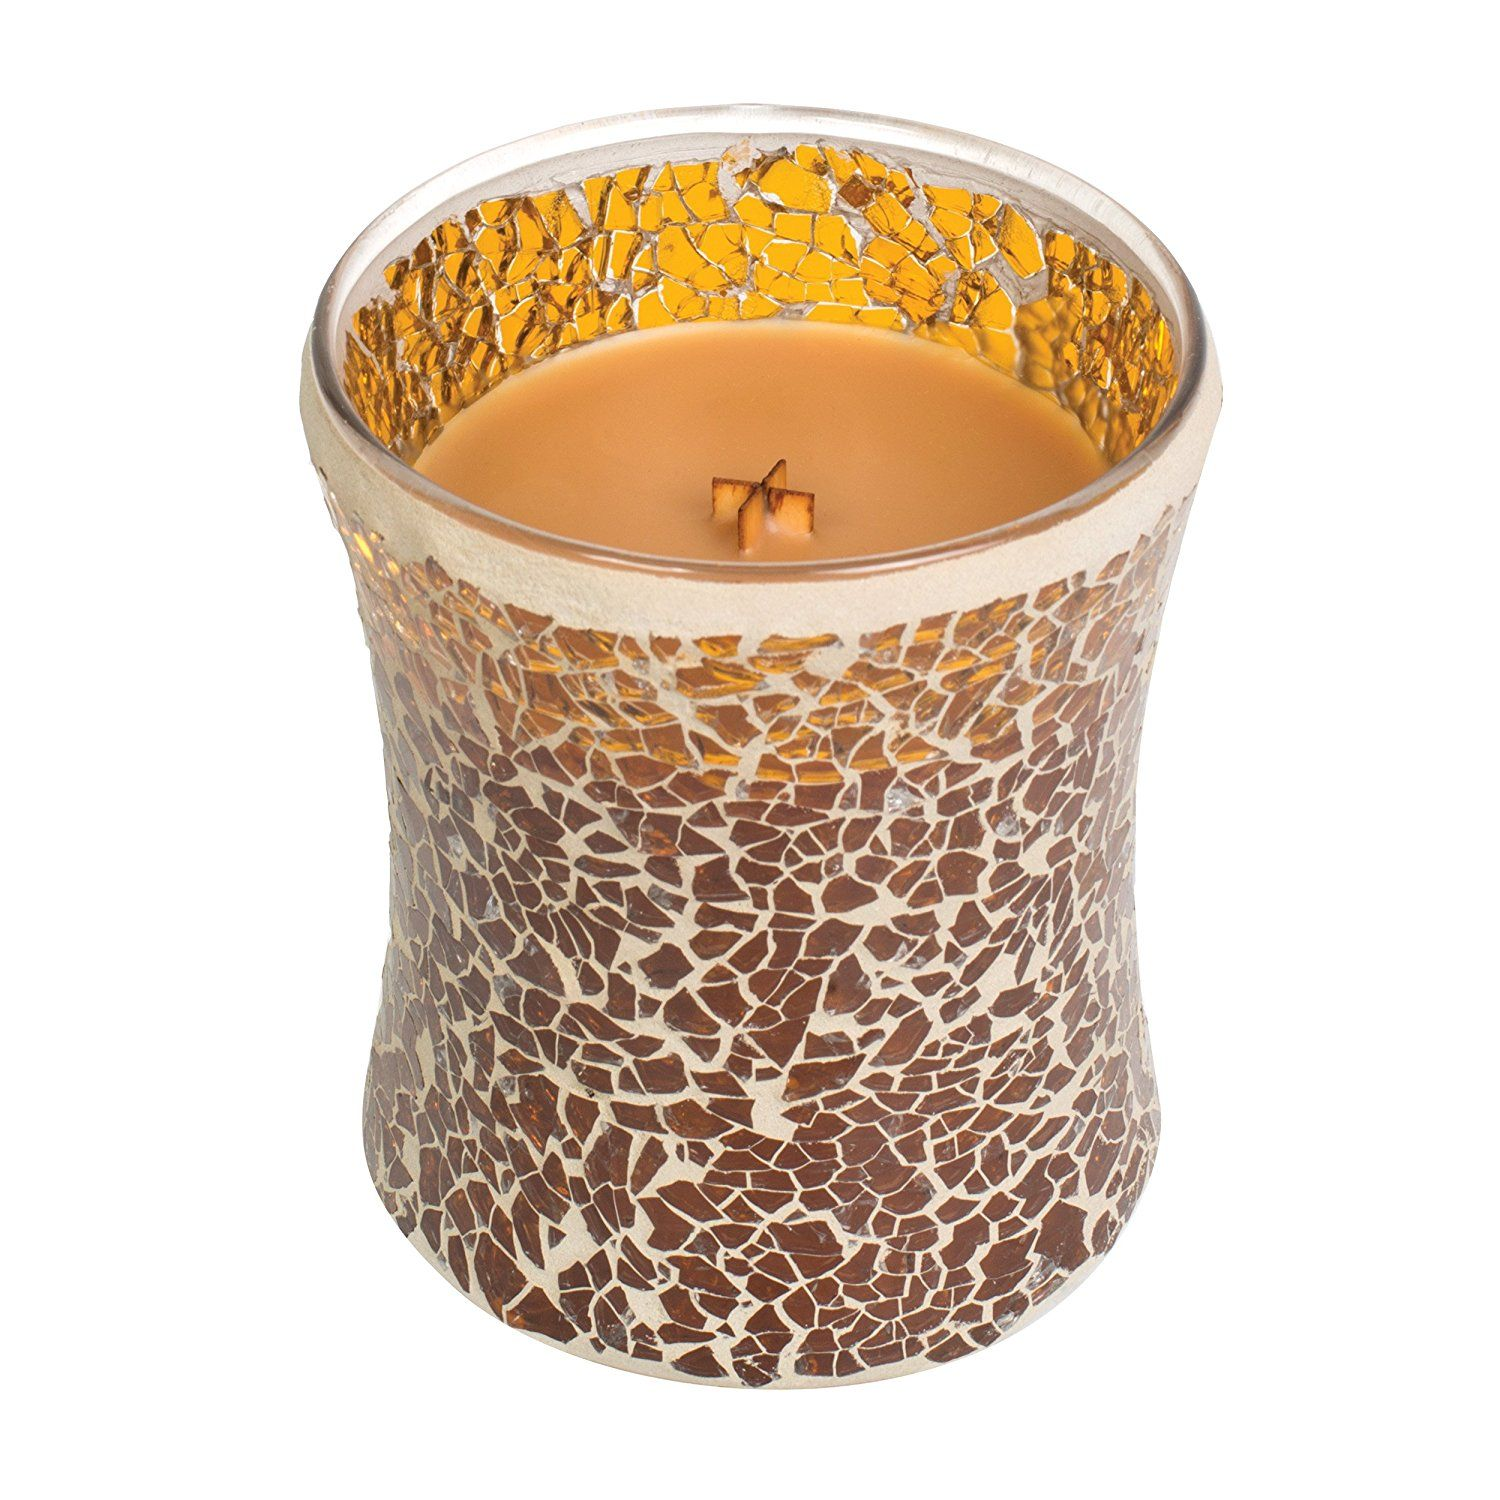 Hot Toddy WoodWick Mosaic Tumbler Candle